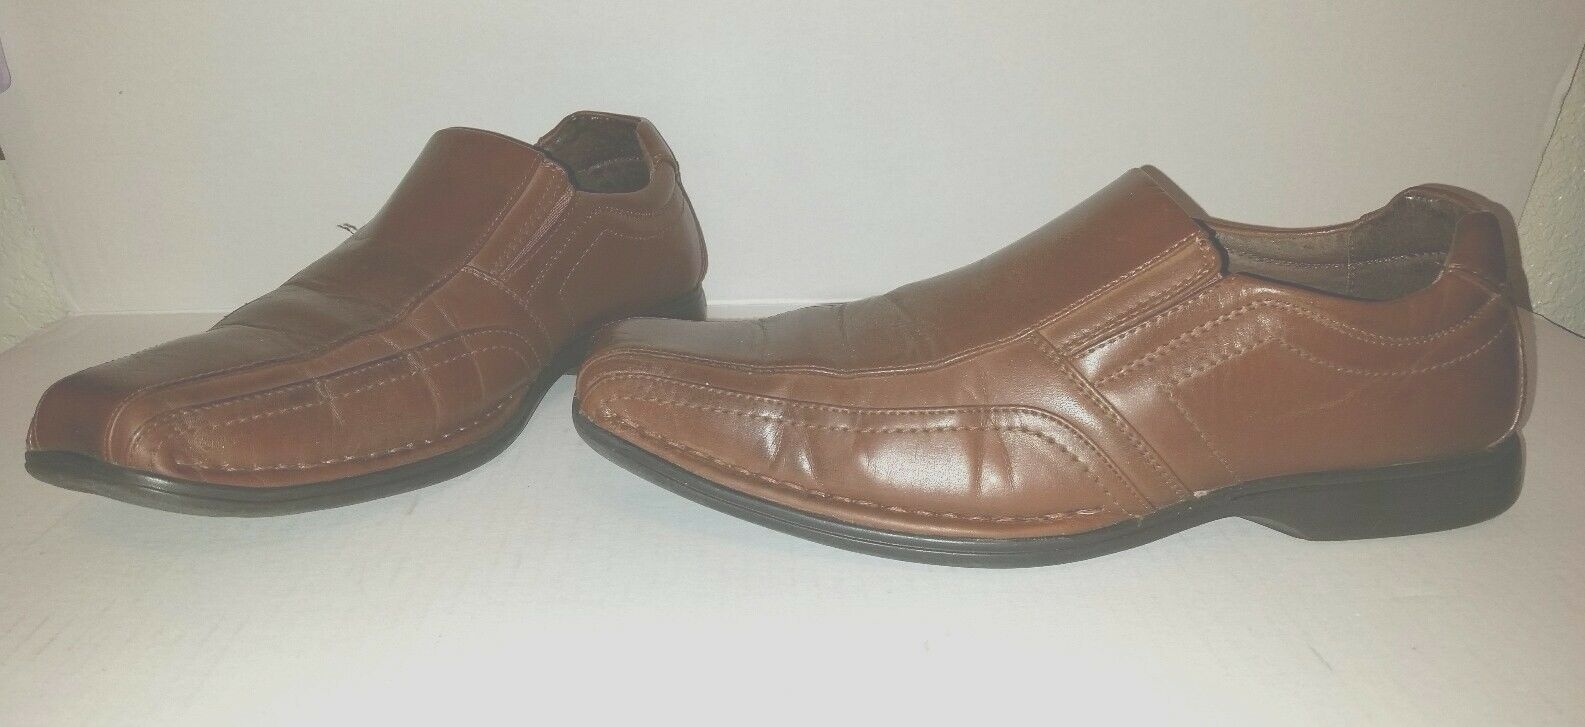 Nice Brown MADDEN M-Nelson Size 10M Slip-on Dress shoes Loafer